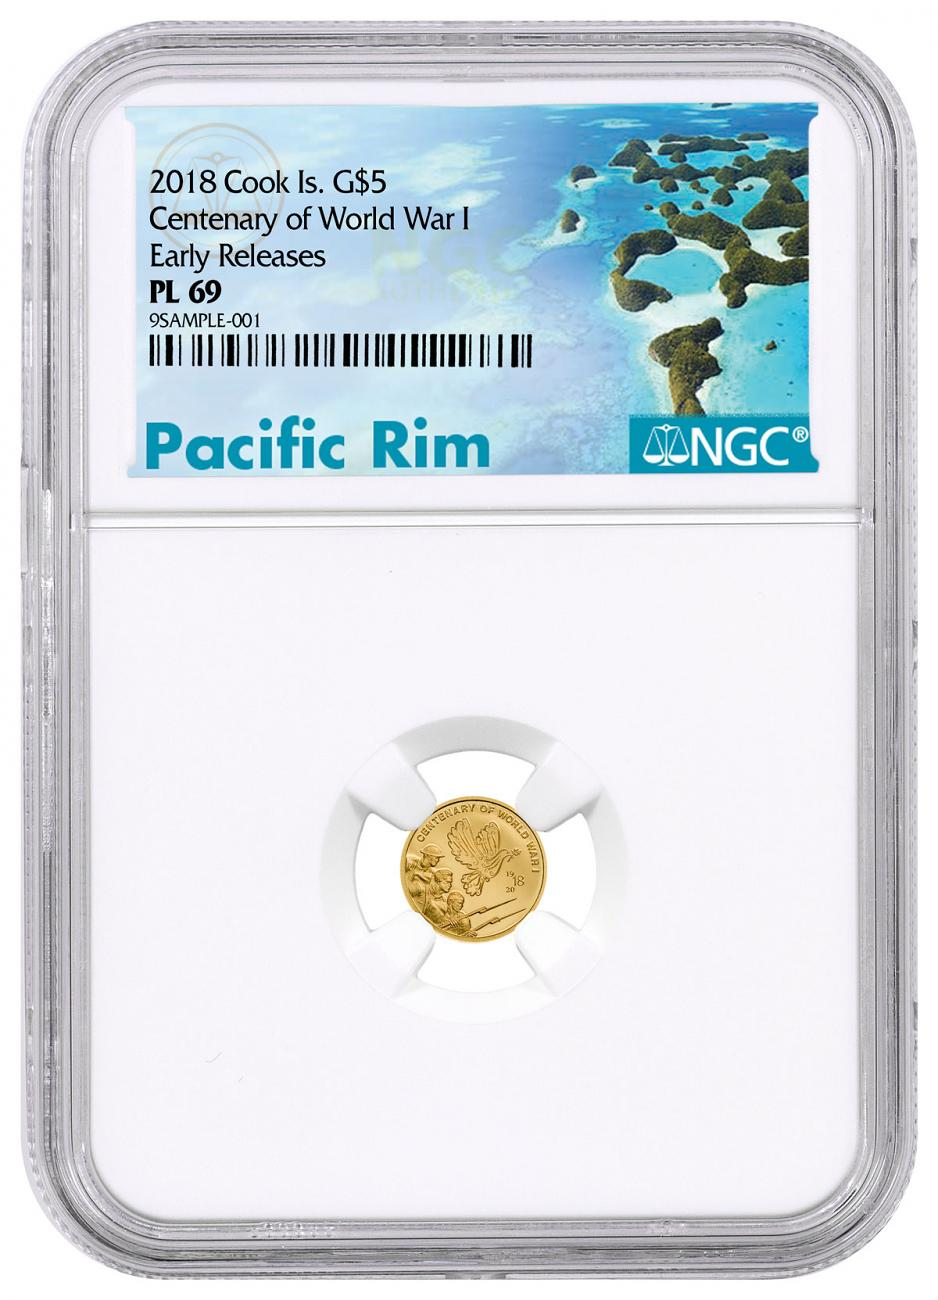 2018 Cook Islands Centenary of World War I Gold Prooflike $5 Coin NGC PL69 ER Exclusive Pacific Rim Label